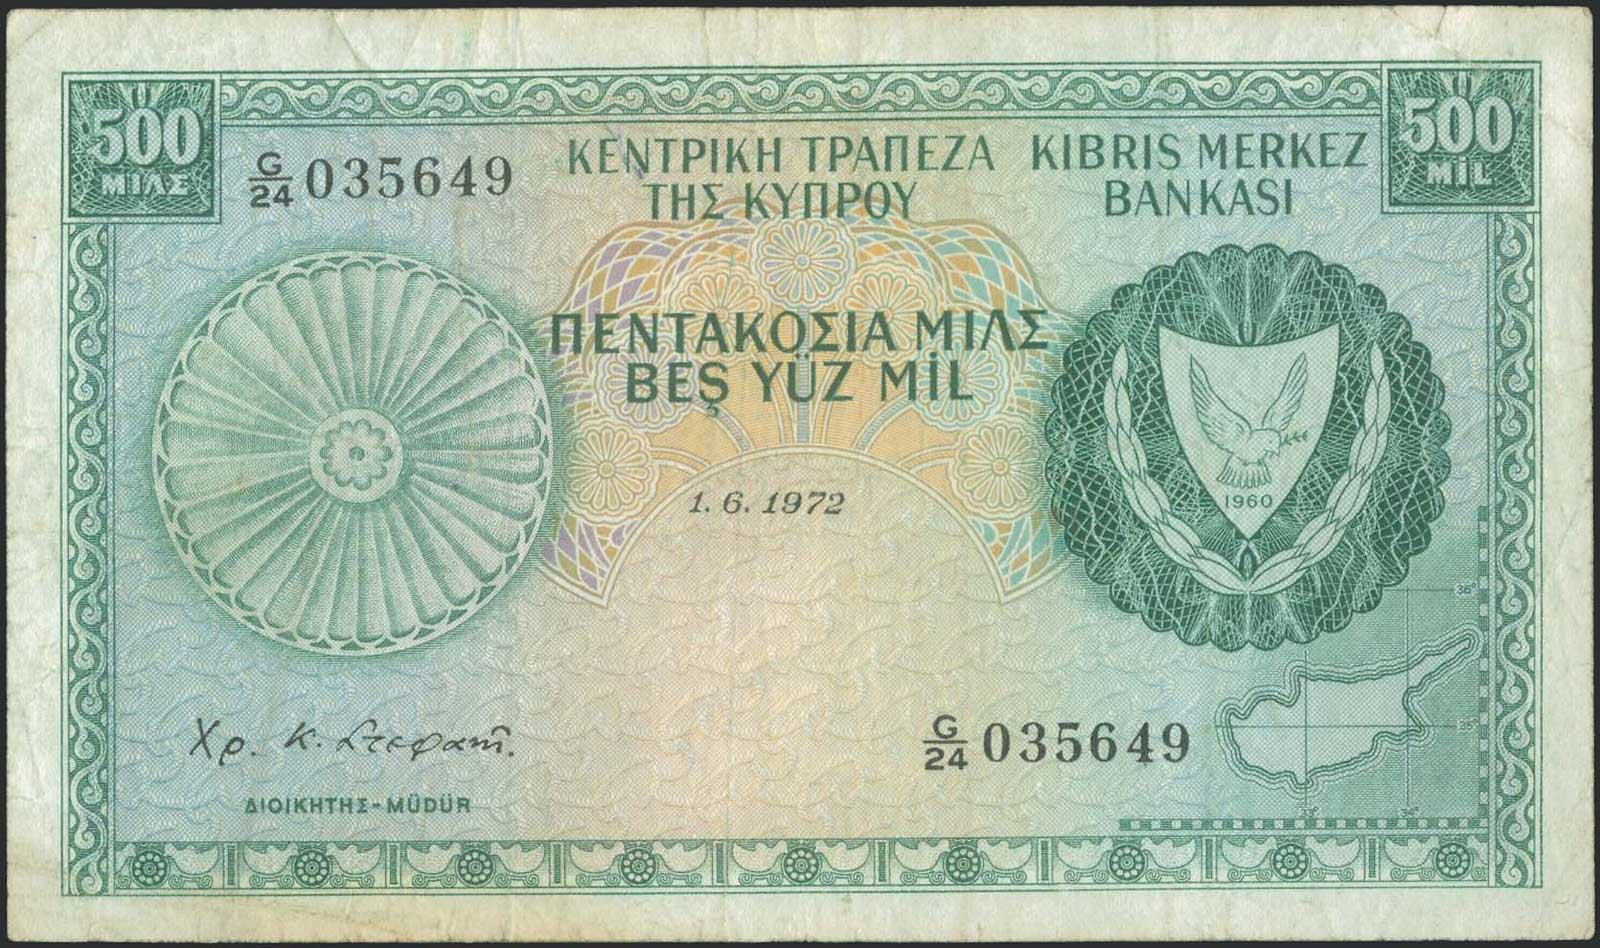 Lot 6353 - CYPRUS-  PAPER MONEY - BANKNOTES banknotes of cyprus -  A. Karamitsos Public & LIVE Bid Auction 588 Coins, Medals & Banknotes